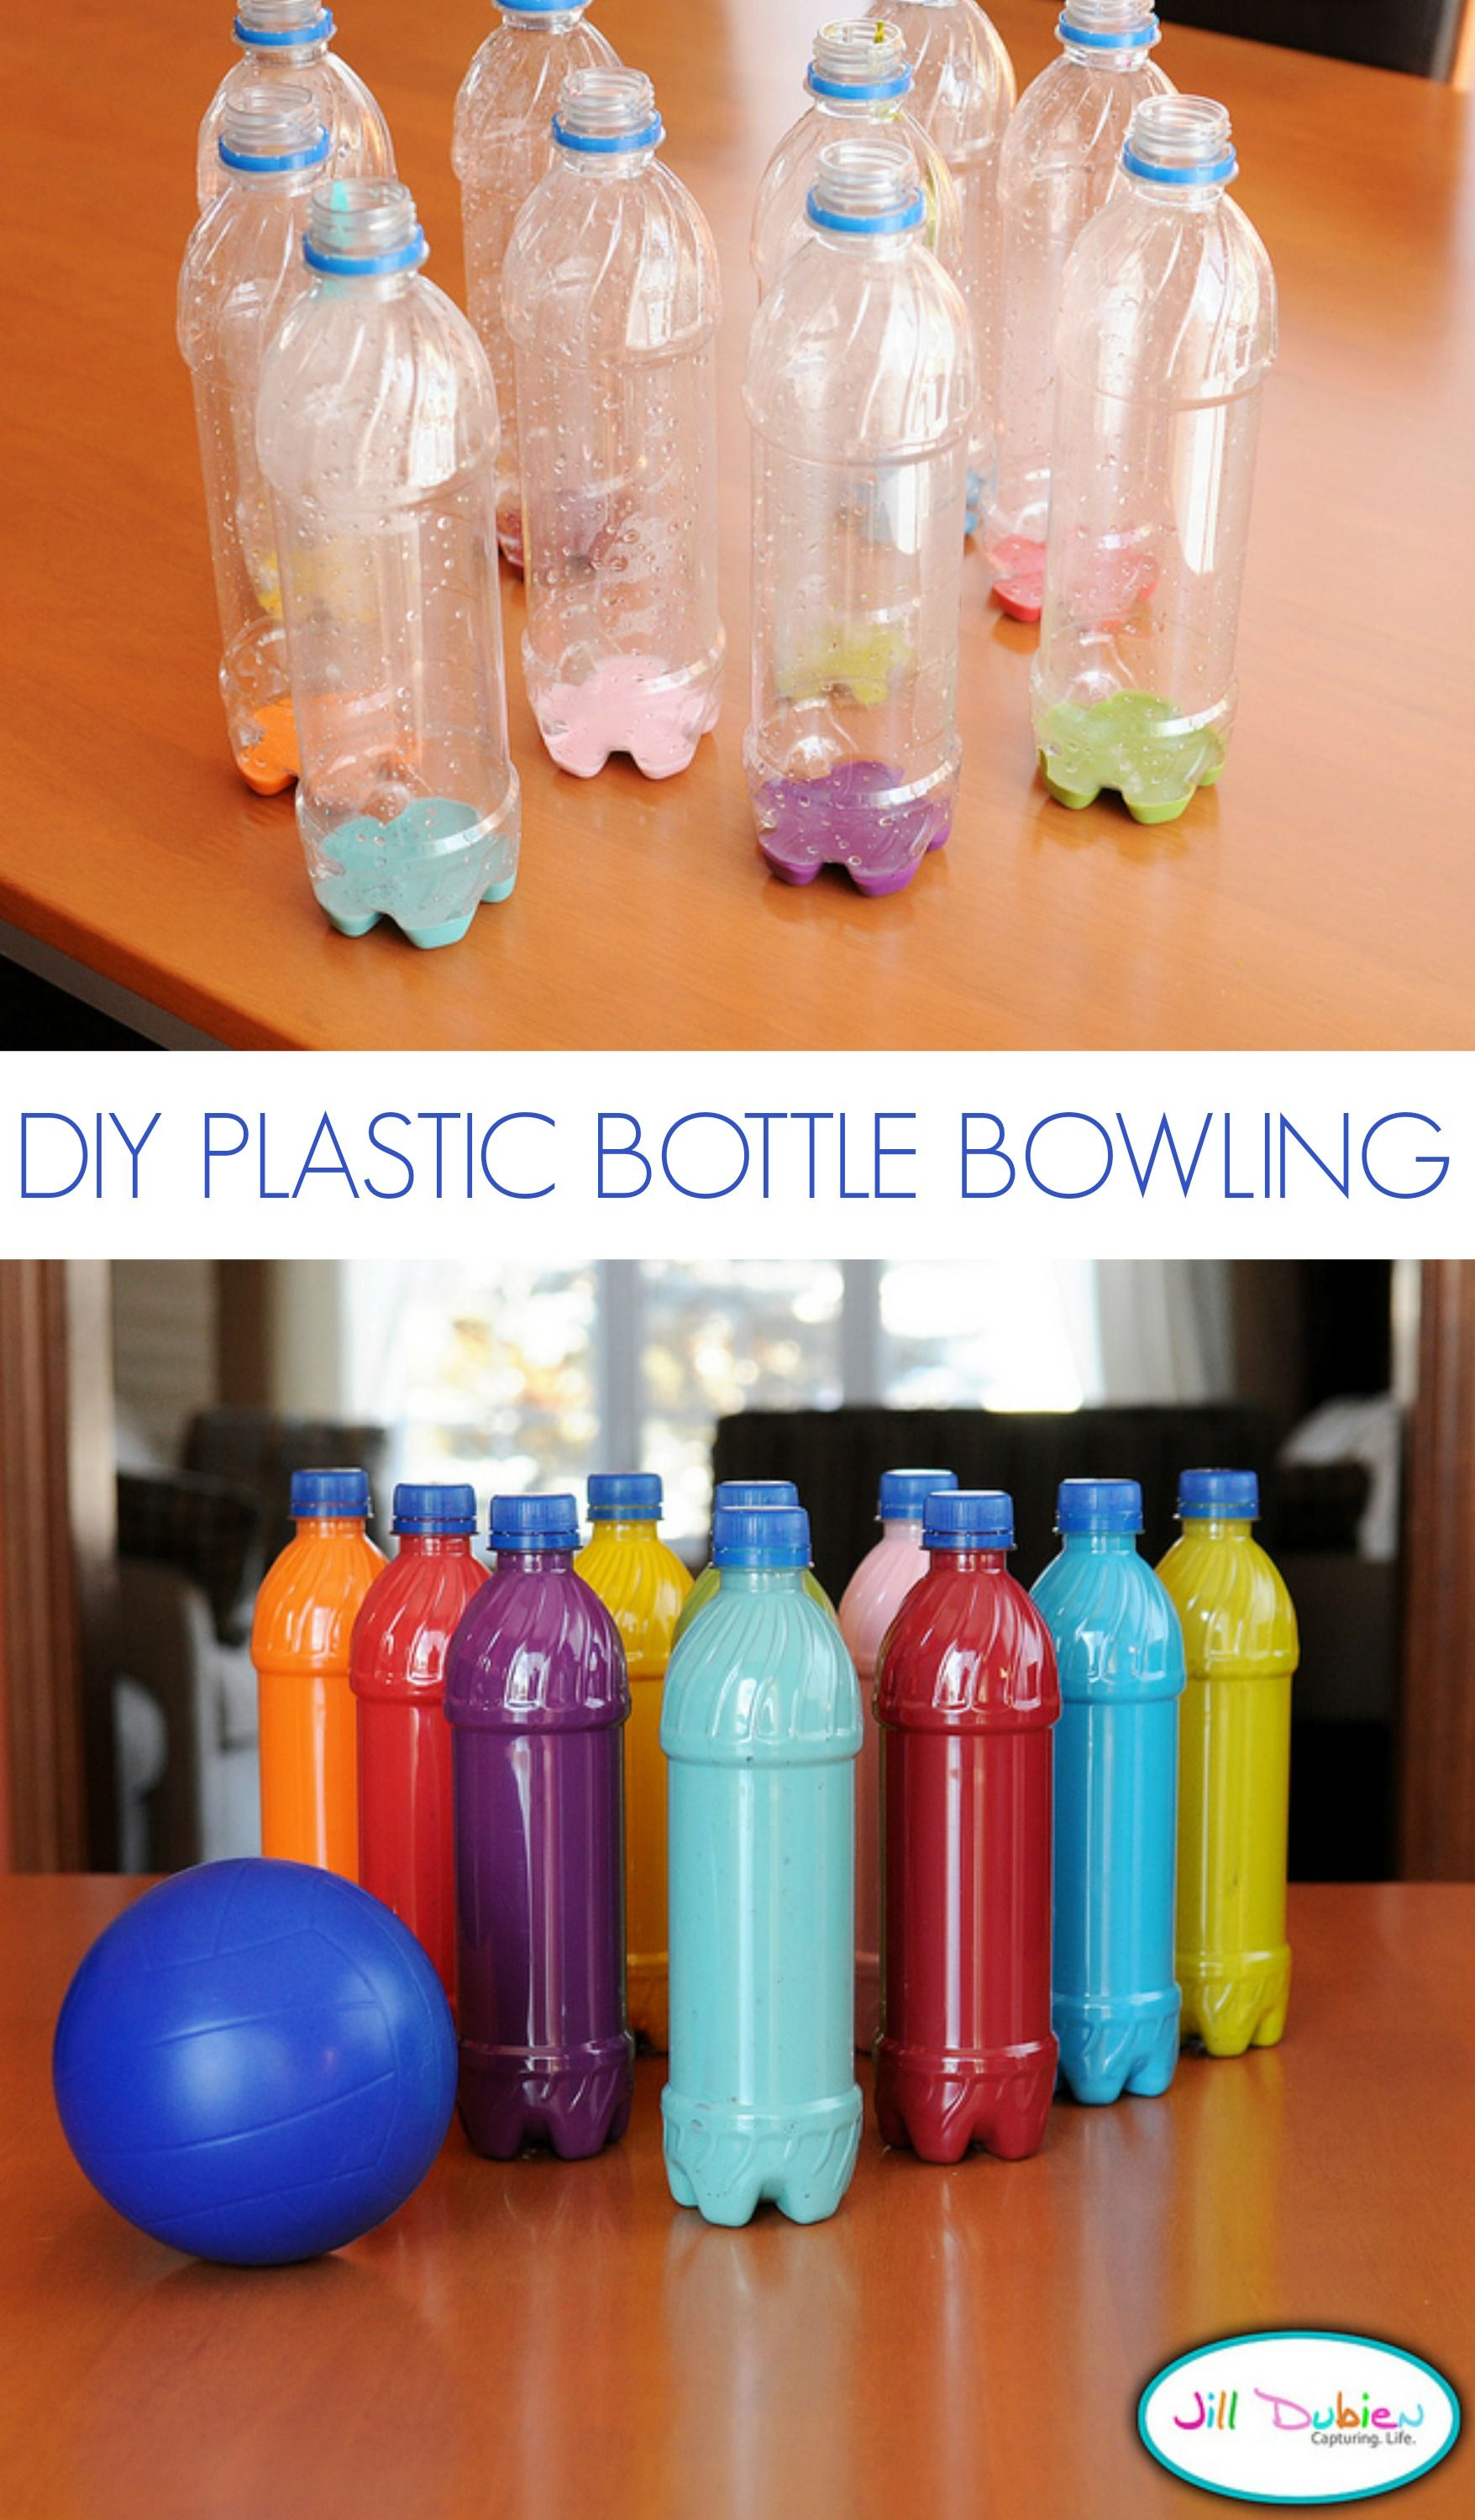 plastic bottle bowling tutorial u create activity ideas pinterest schulfest spiel und. Black Bedroom Furniture Sets. Home Design Ideas